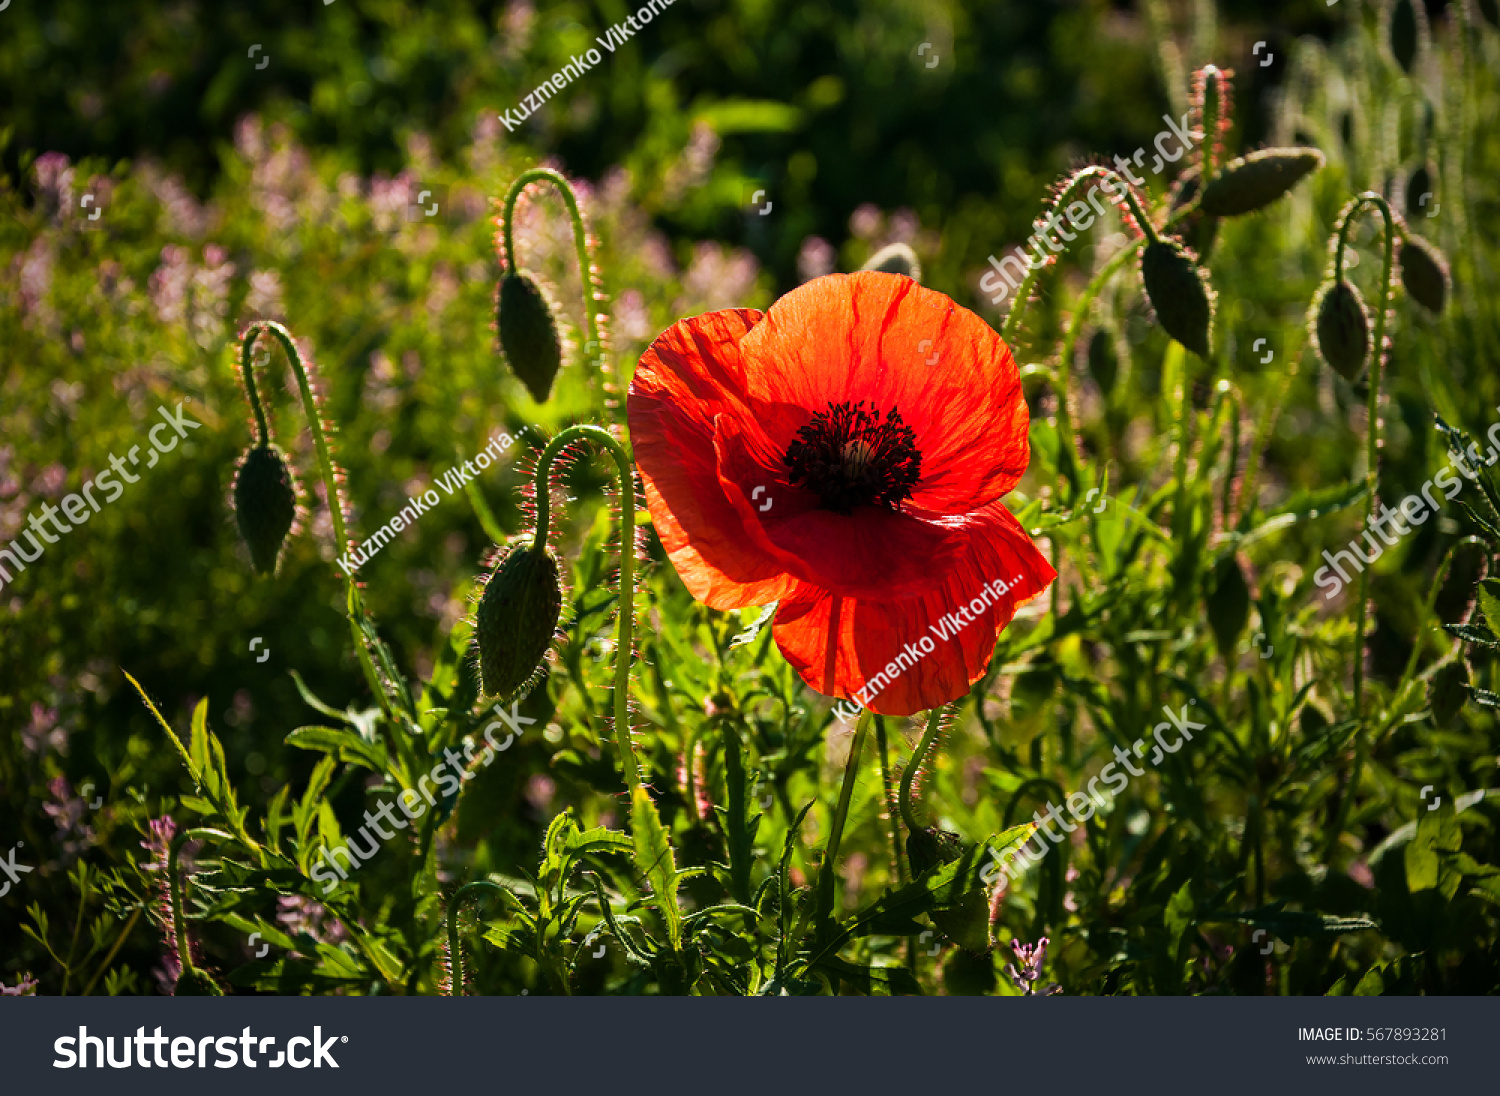 Similar Images Stock Photos Vectors Of Big Red Poppy Flower Buds